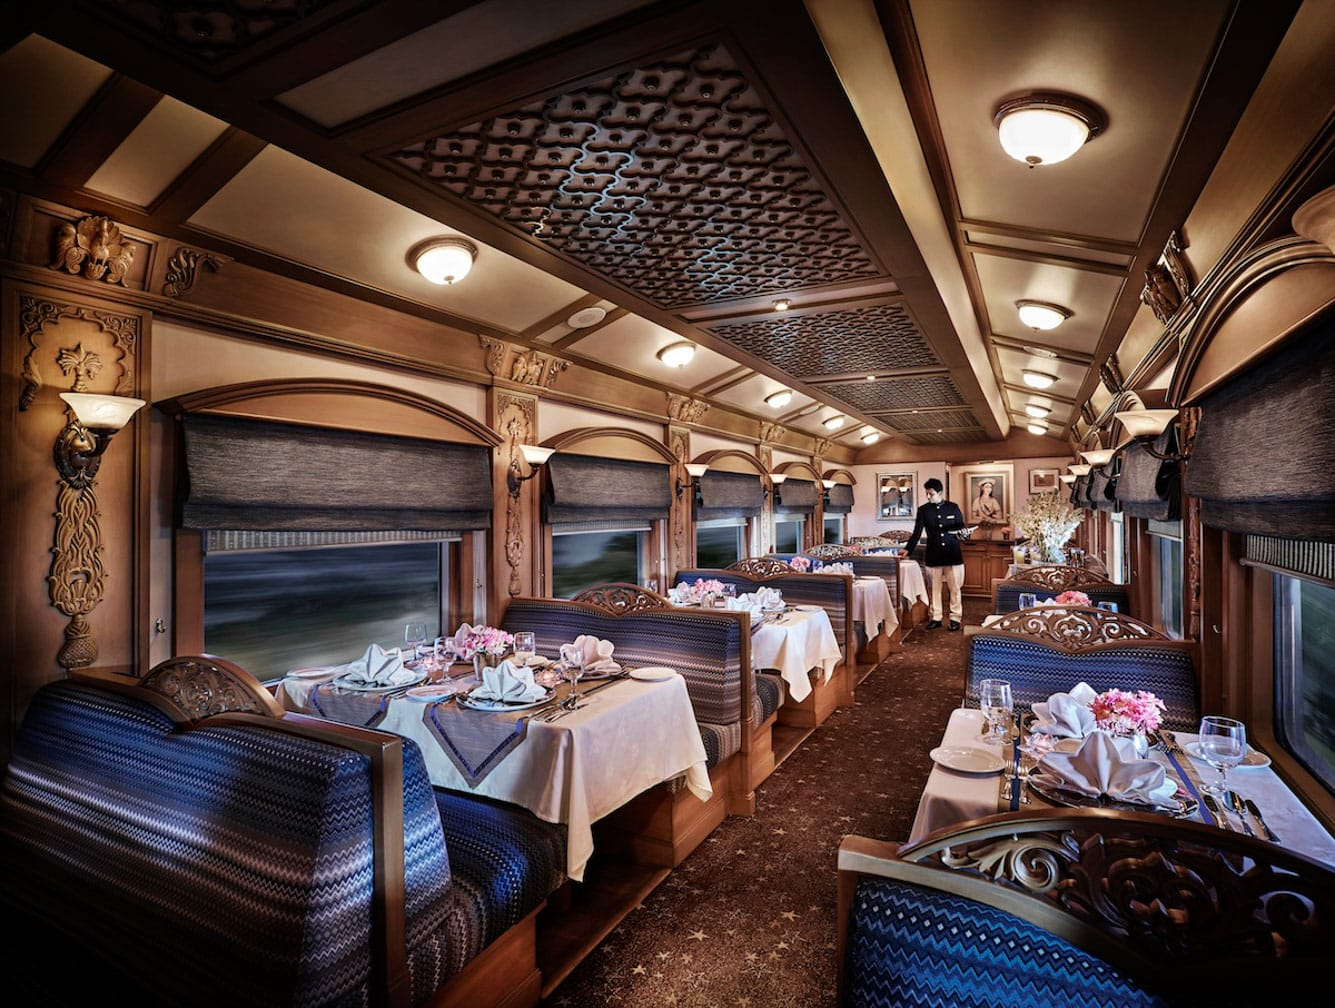 Dining cabin ready for guests on the Darjeeling Mail: Mumbai to Kolkata by Luxury Deccan Odyssey Train journey